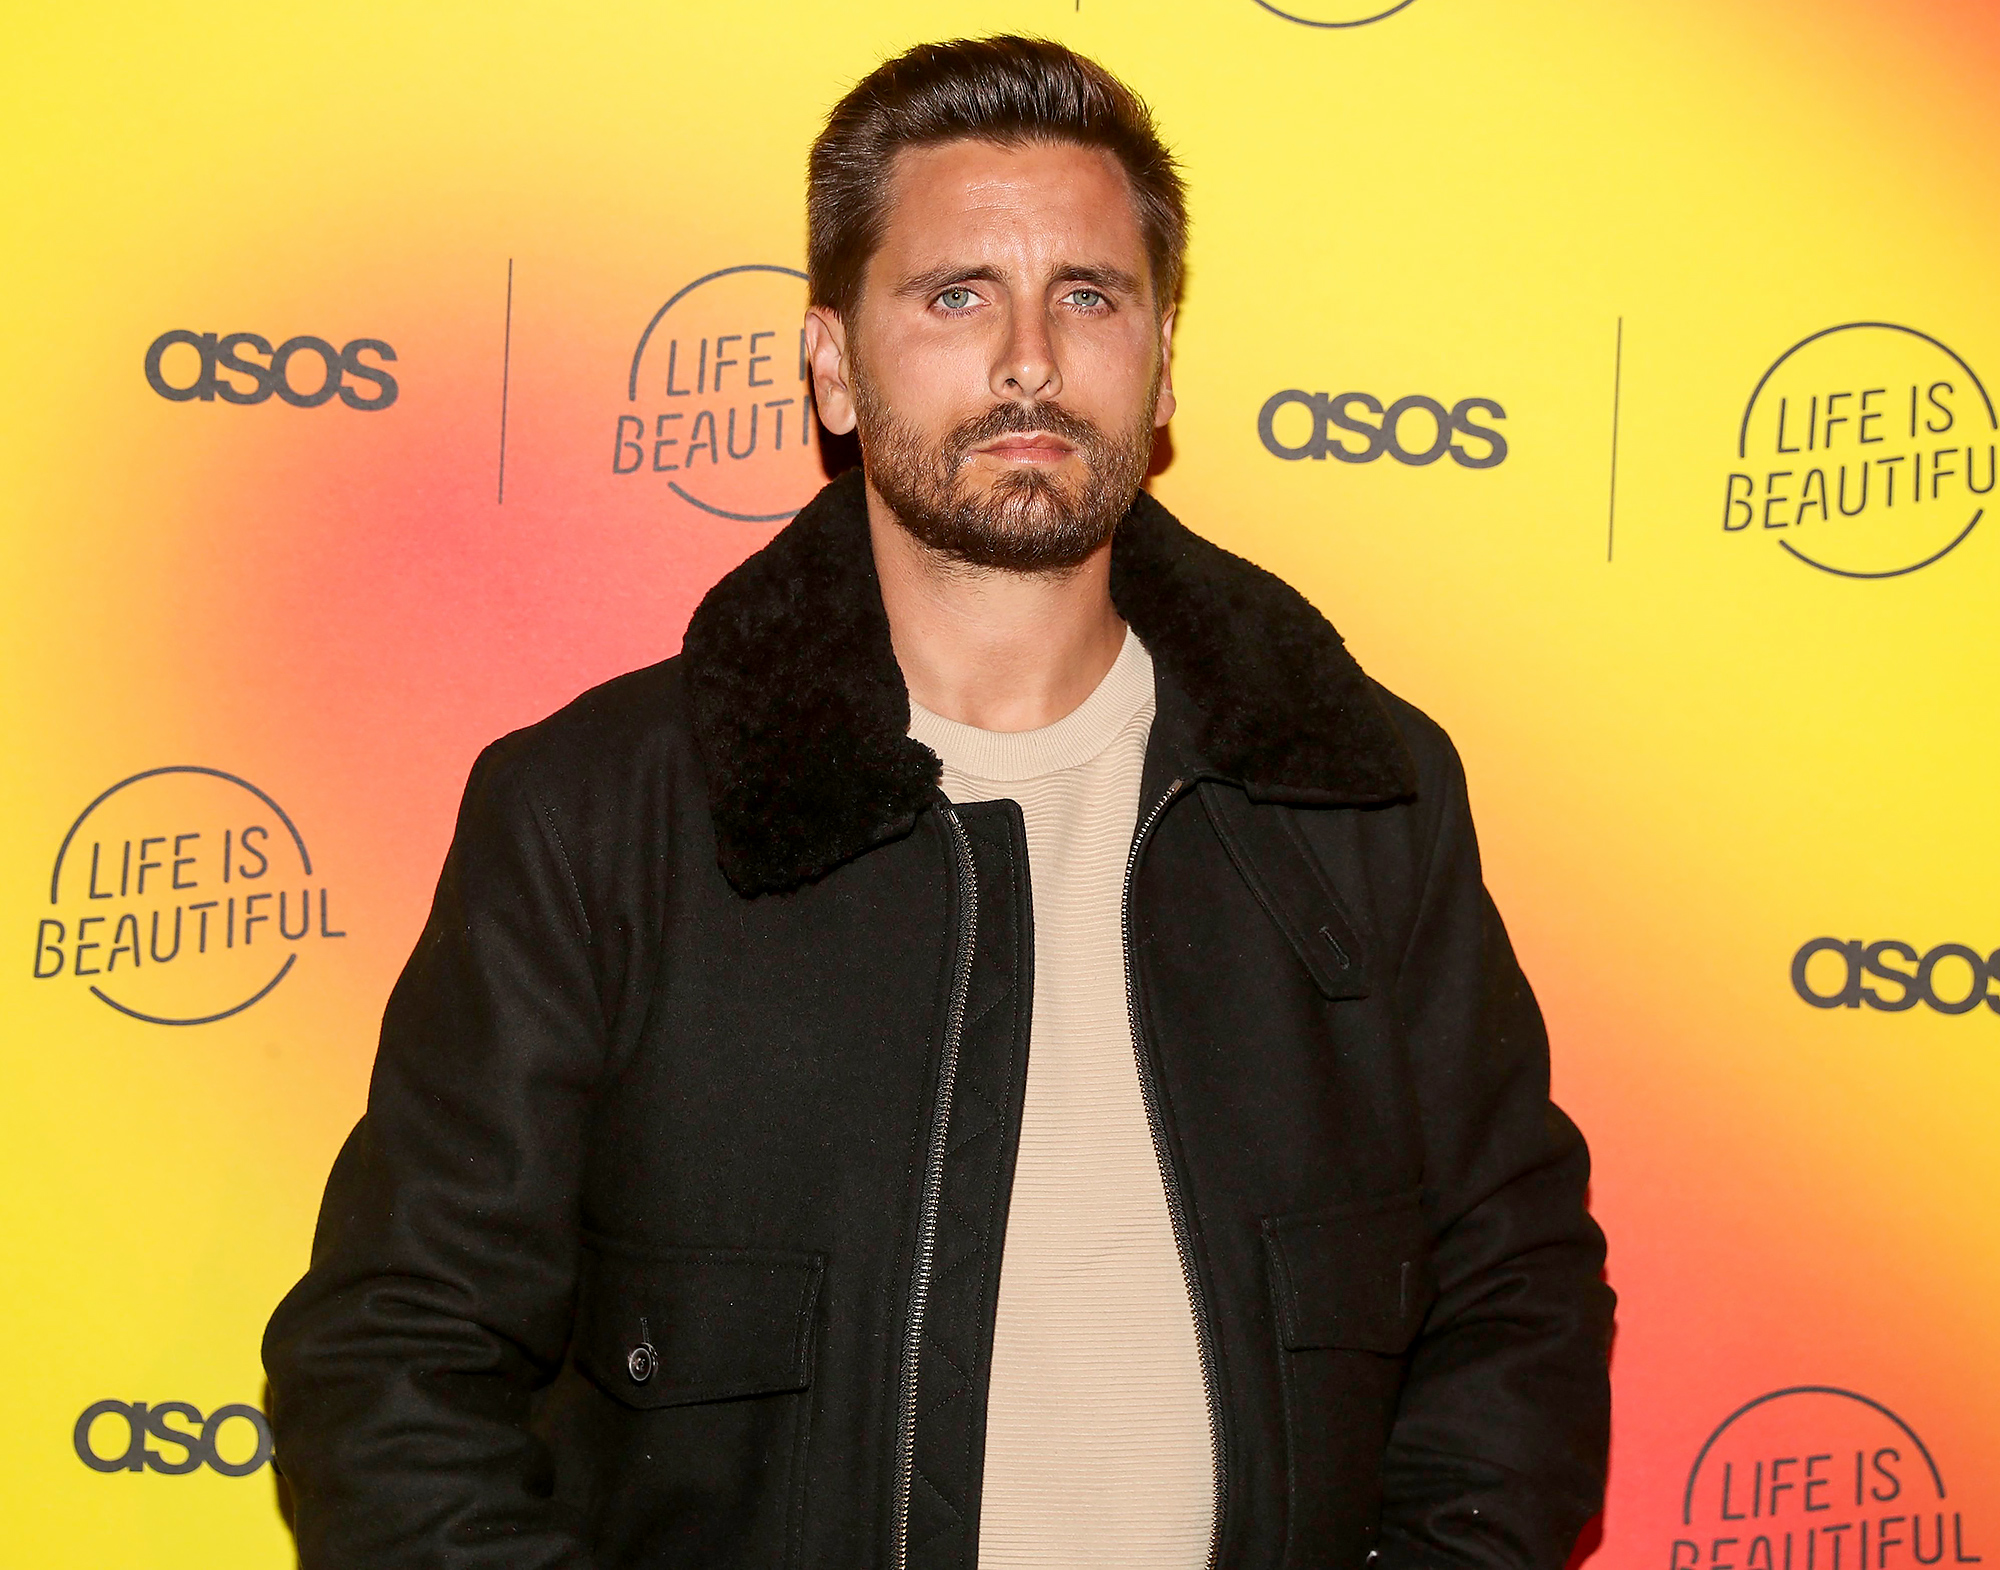 Scott Disick Checks Out of Rehab After Photos Leak